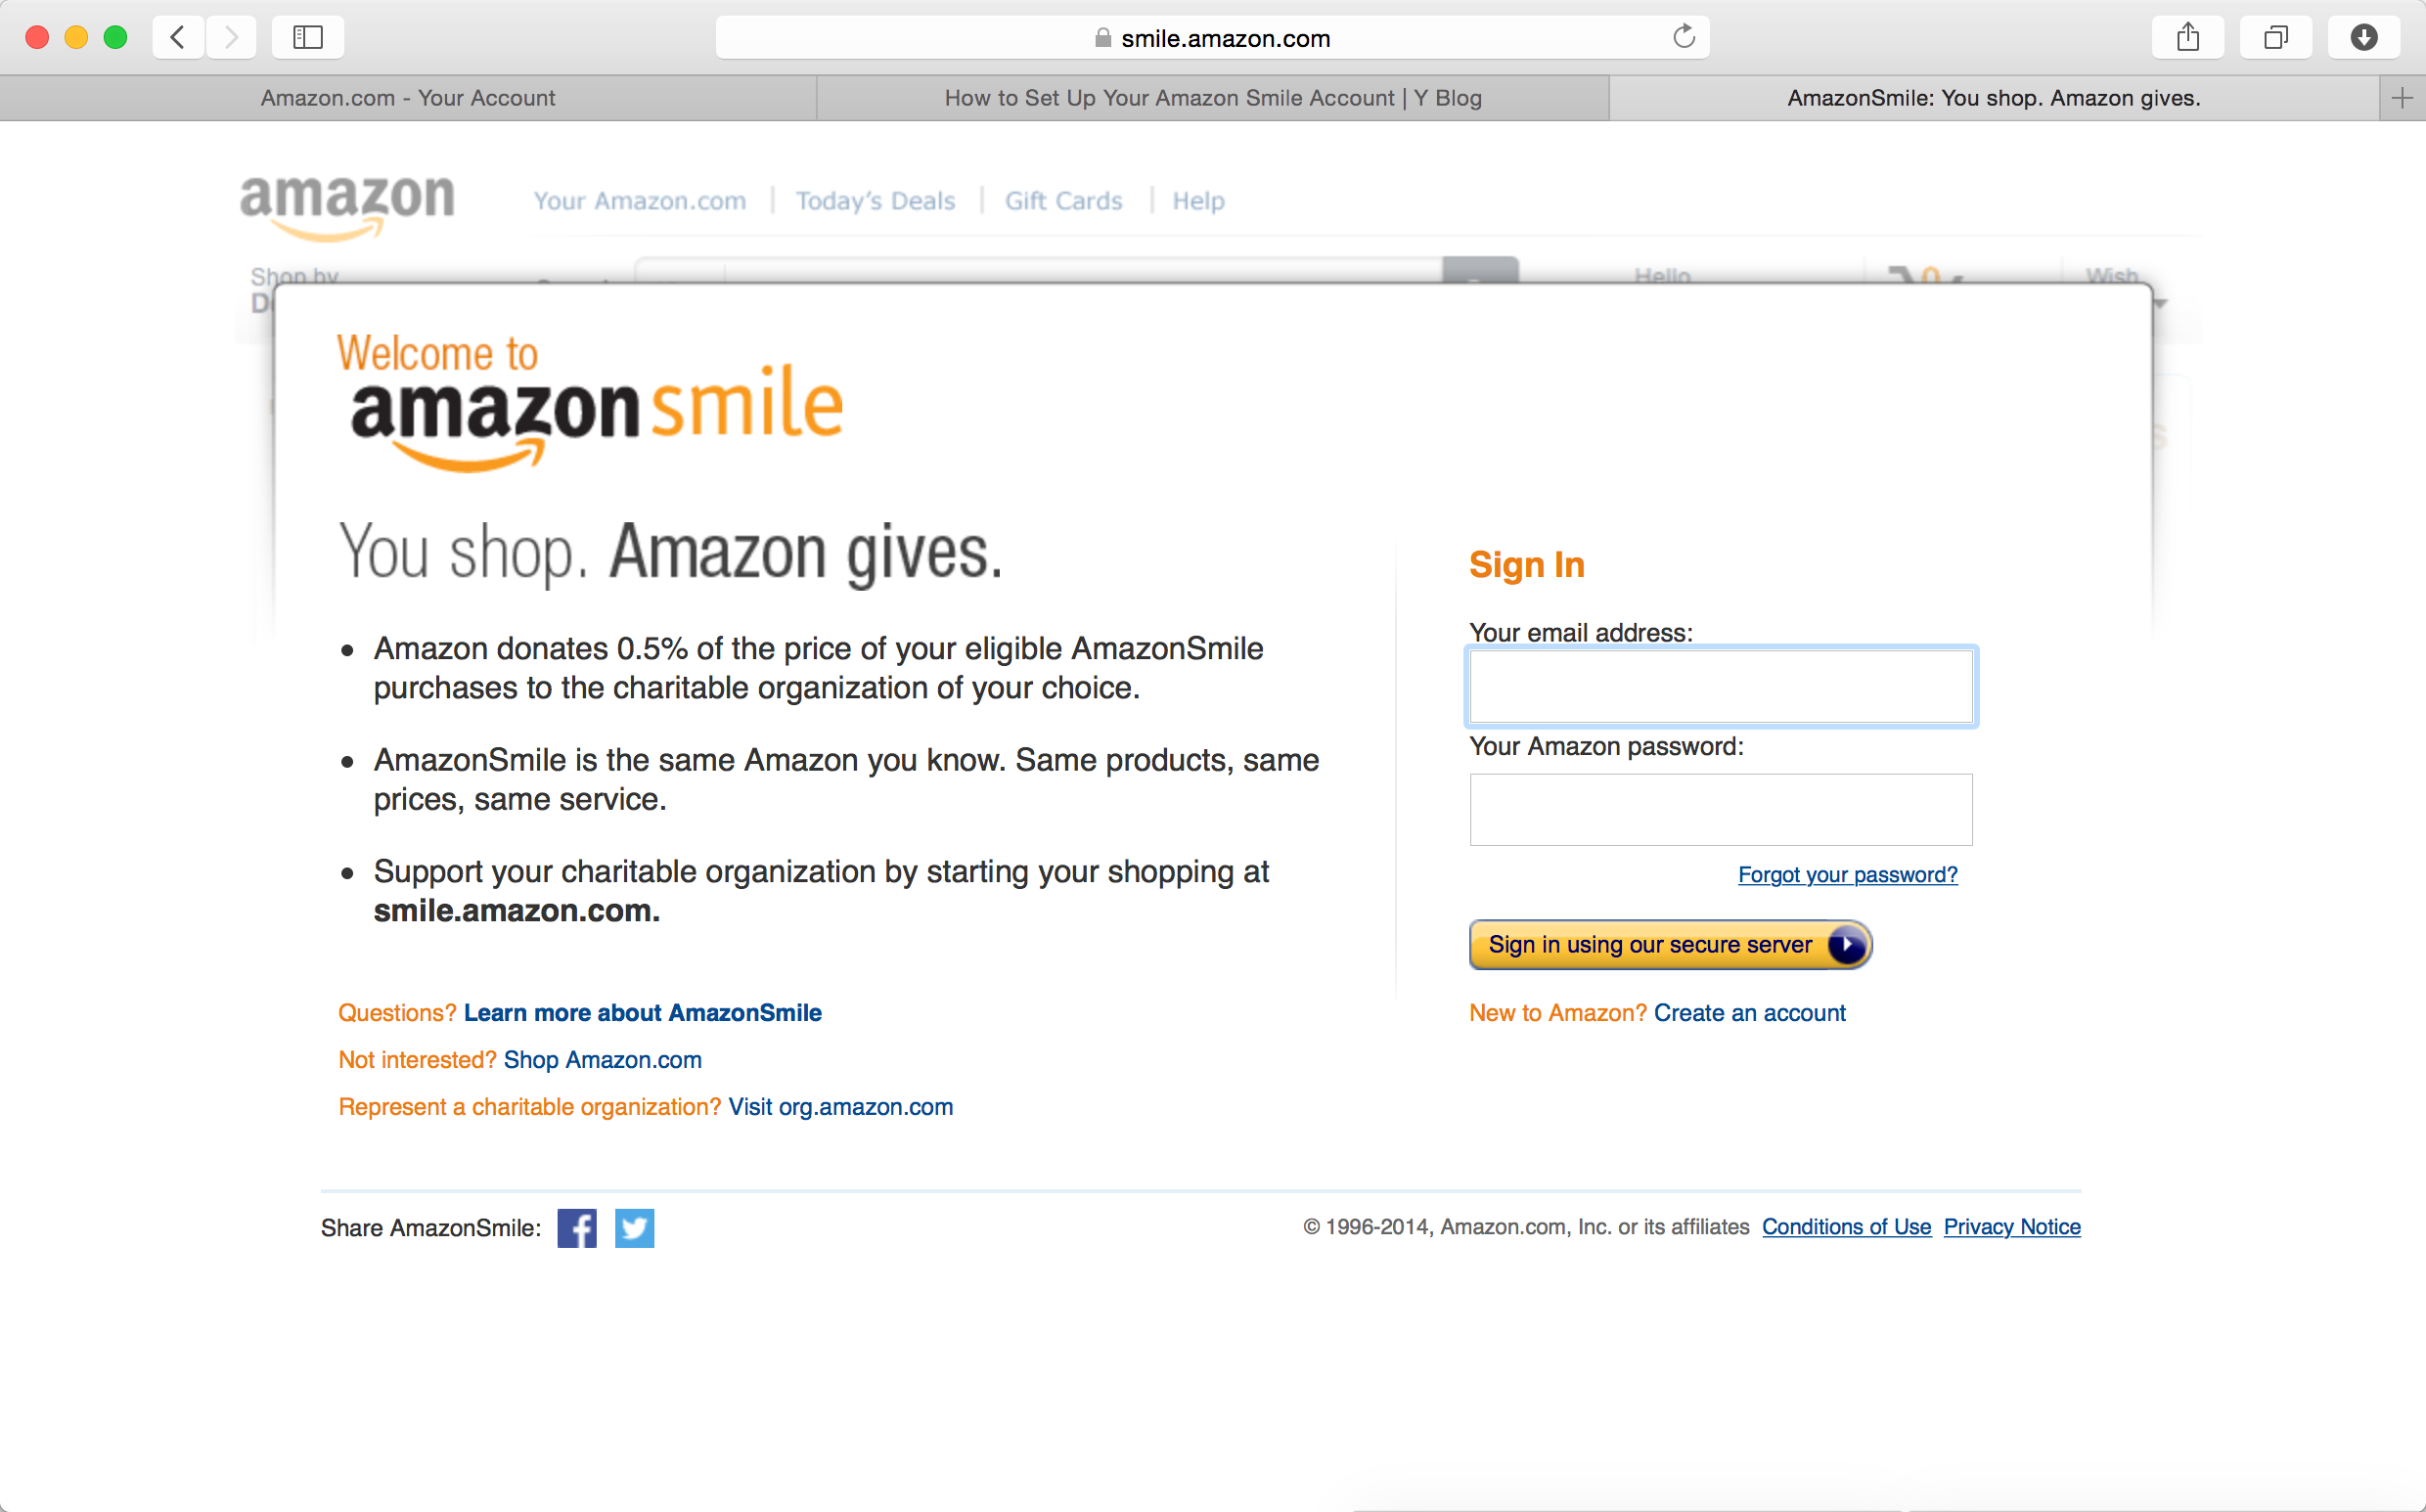 BUK_amazon_smile_set_up_3.png